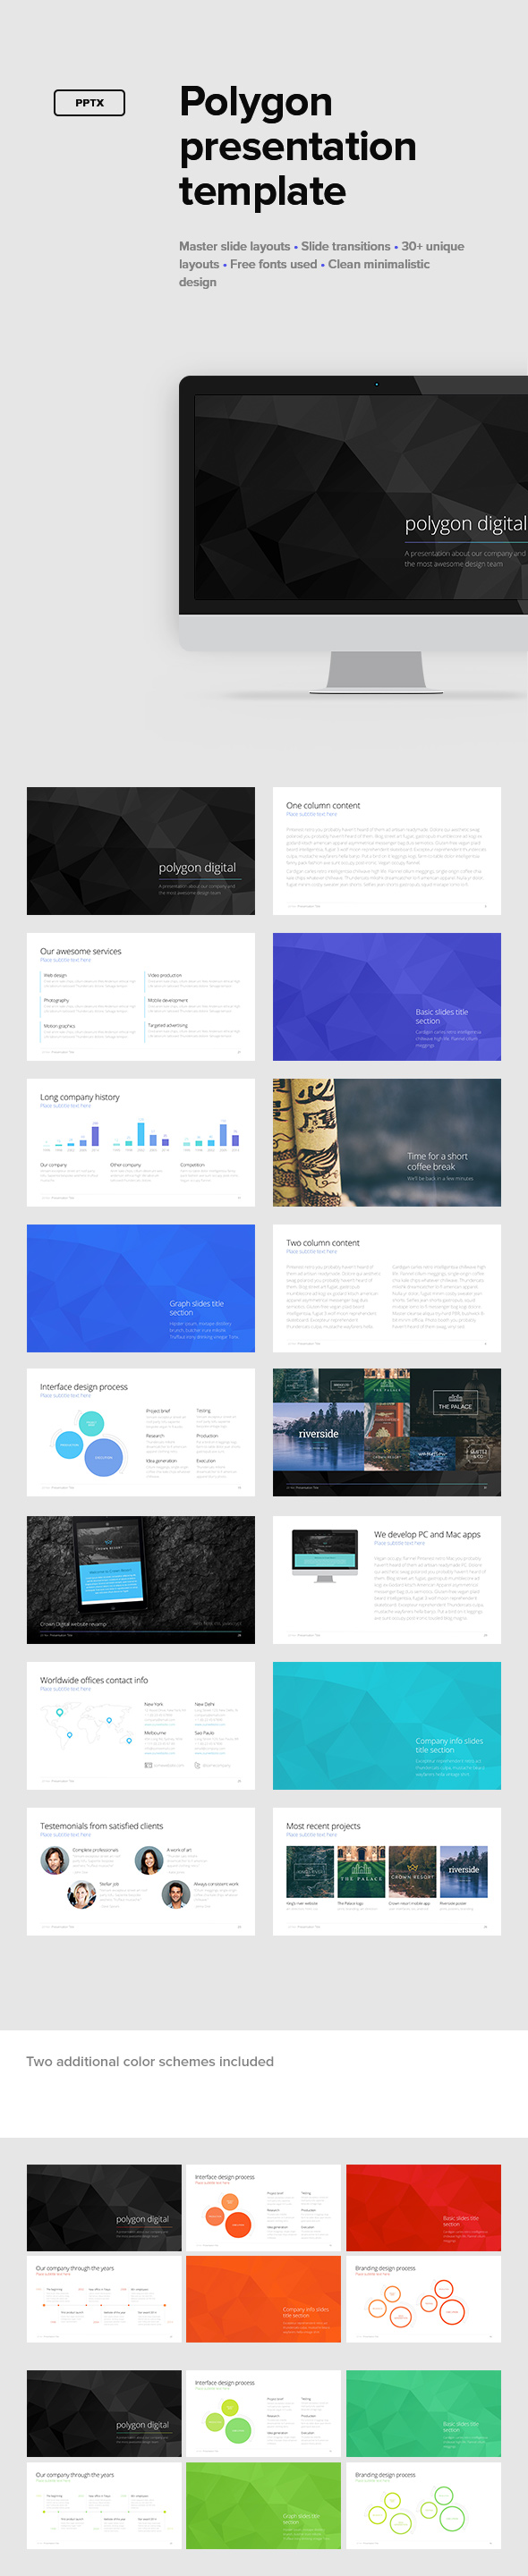 Polygon Presentation Template - PowerPoint Templates Presentation Templates